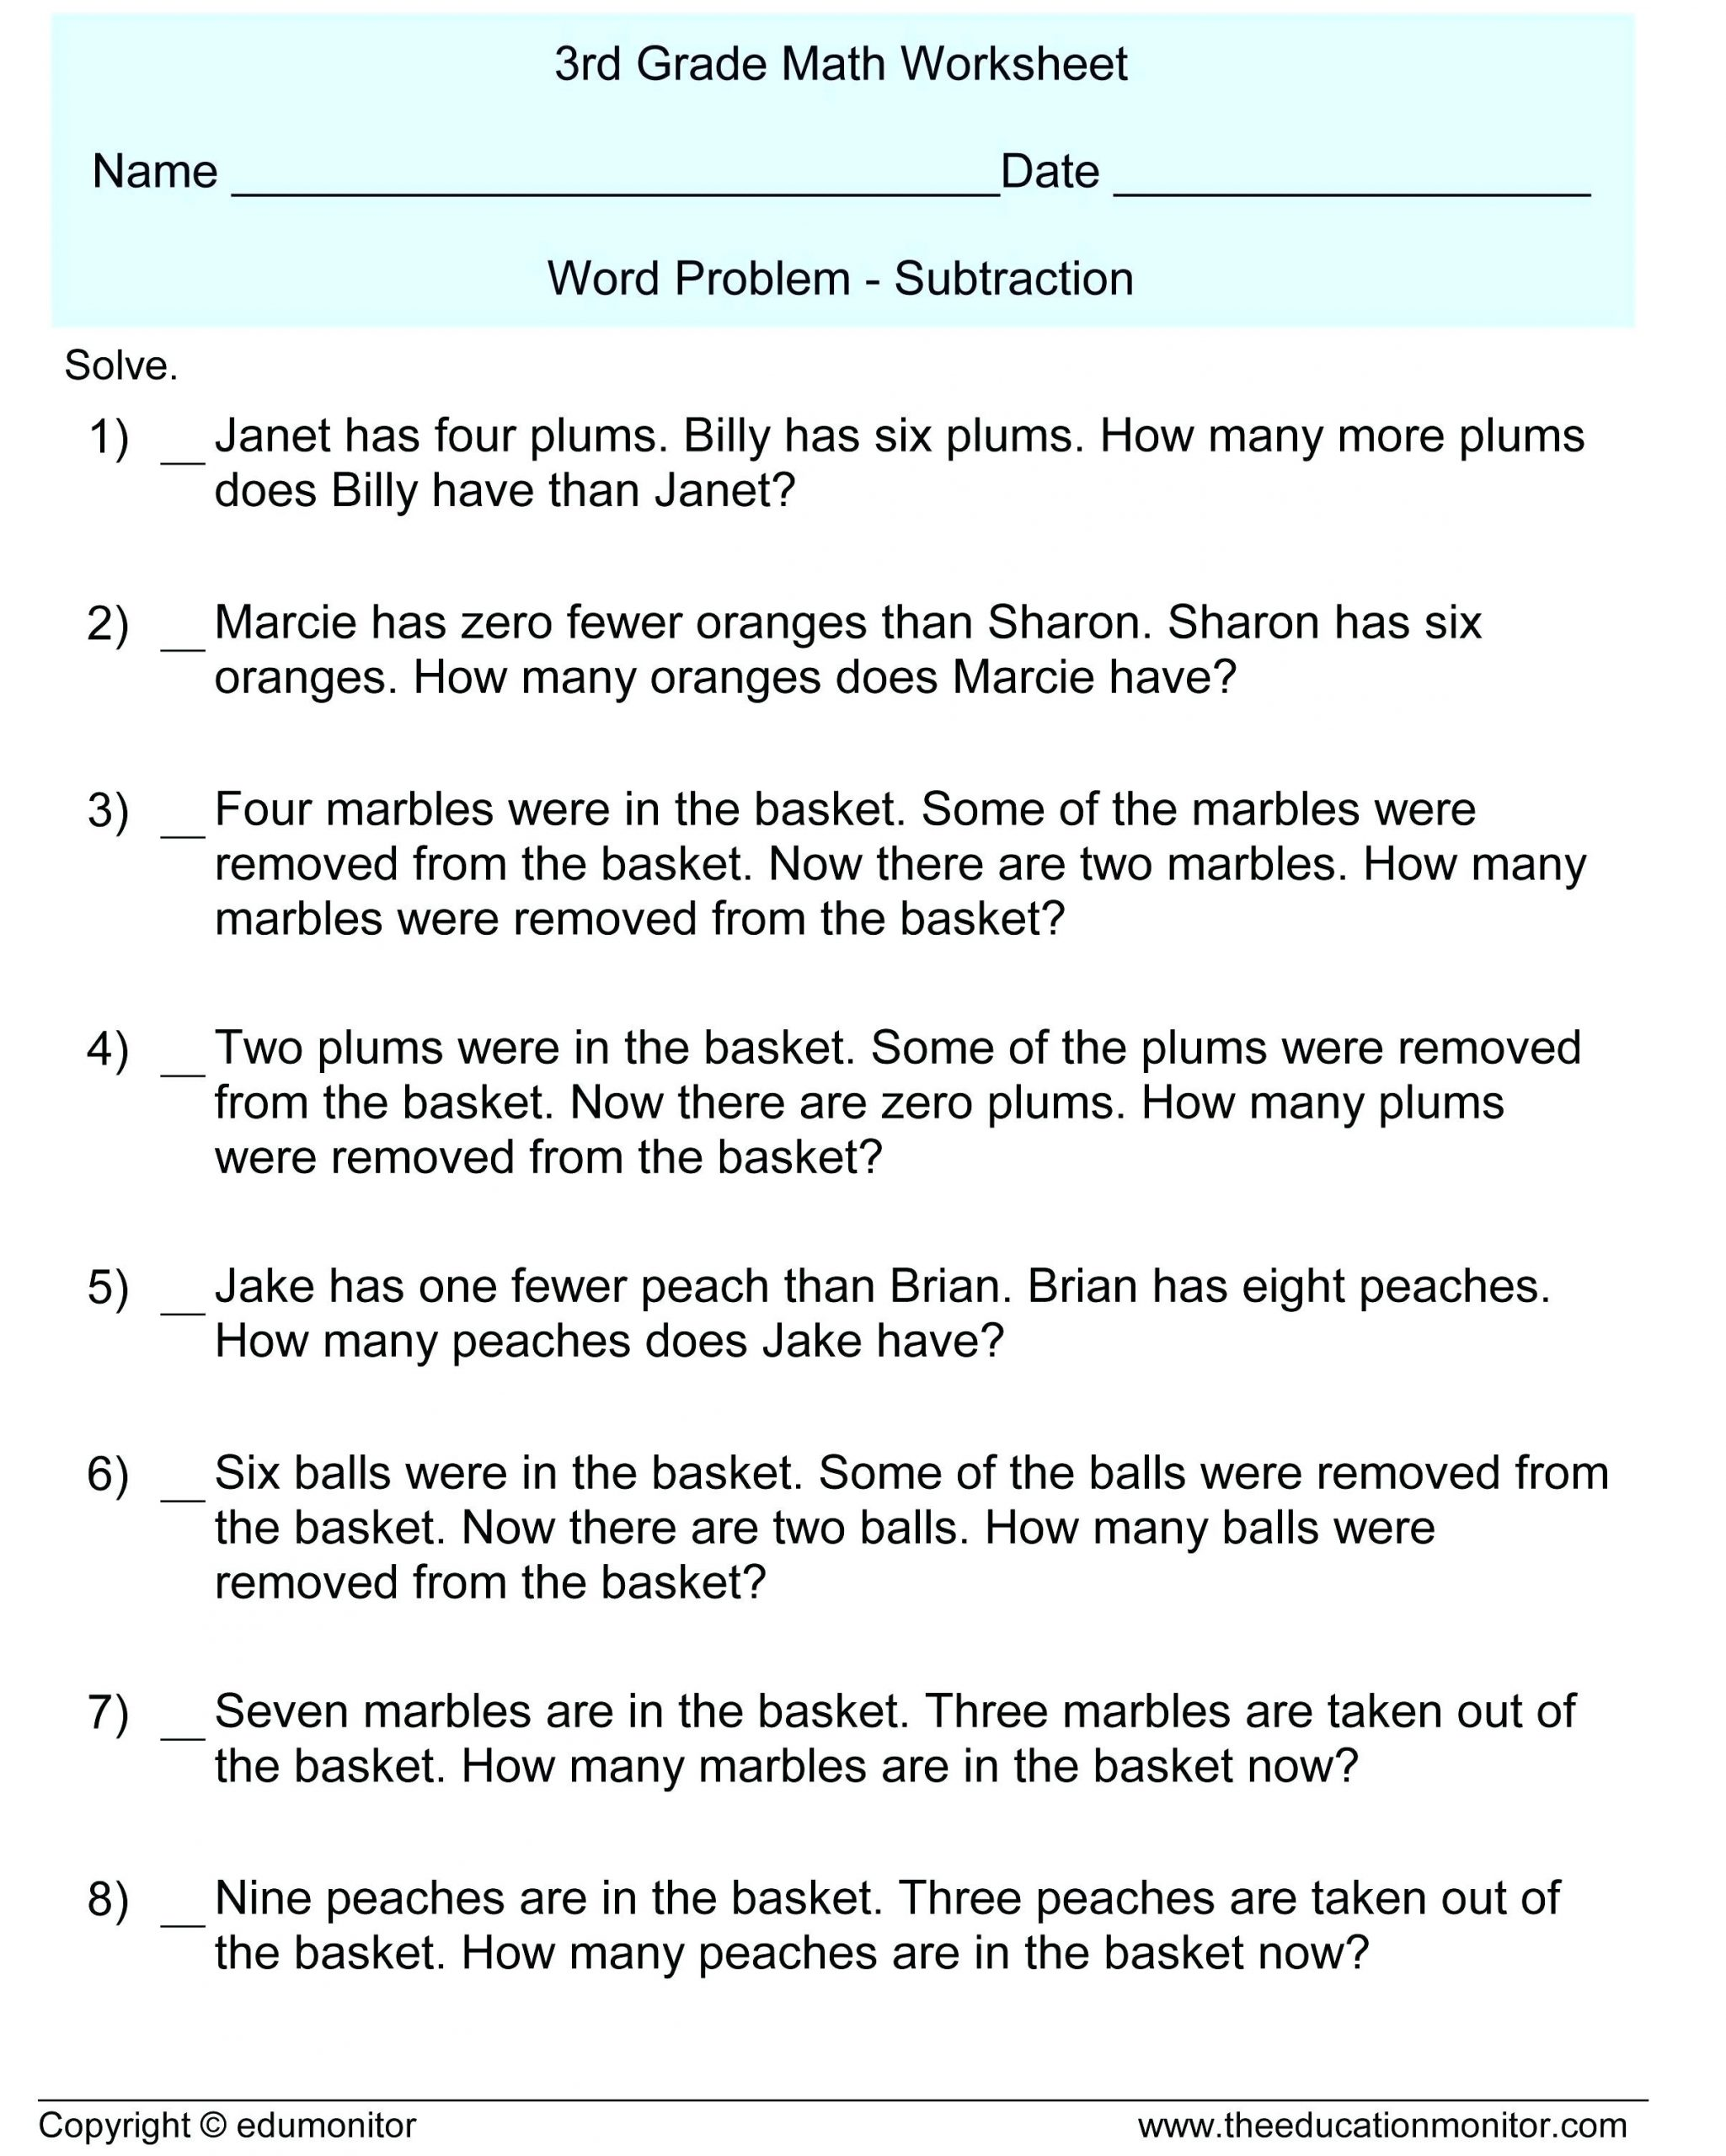 Third Grade Fraction Word Problems Rounding Word Problems 3rd Grade Luxury Collection Math